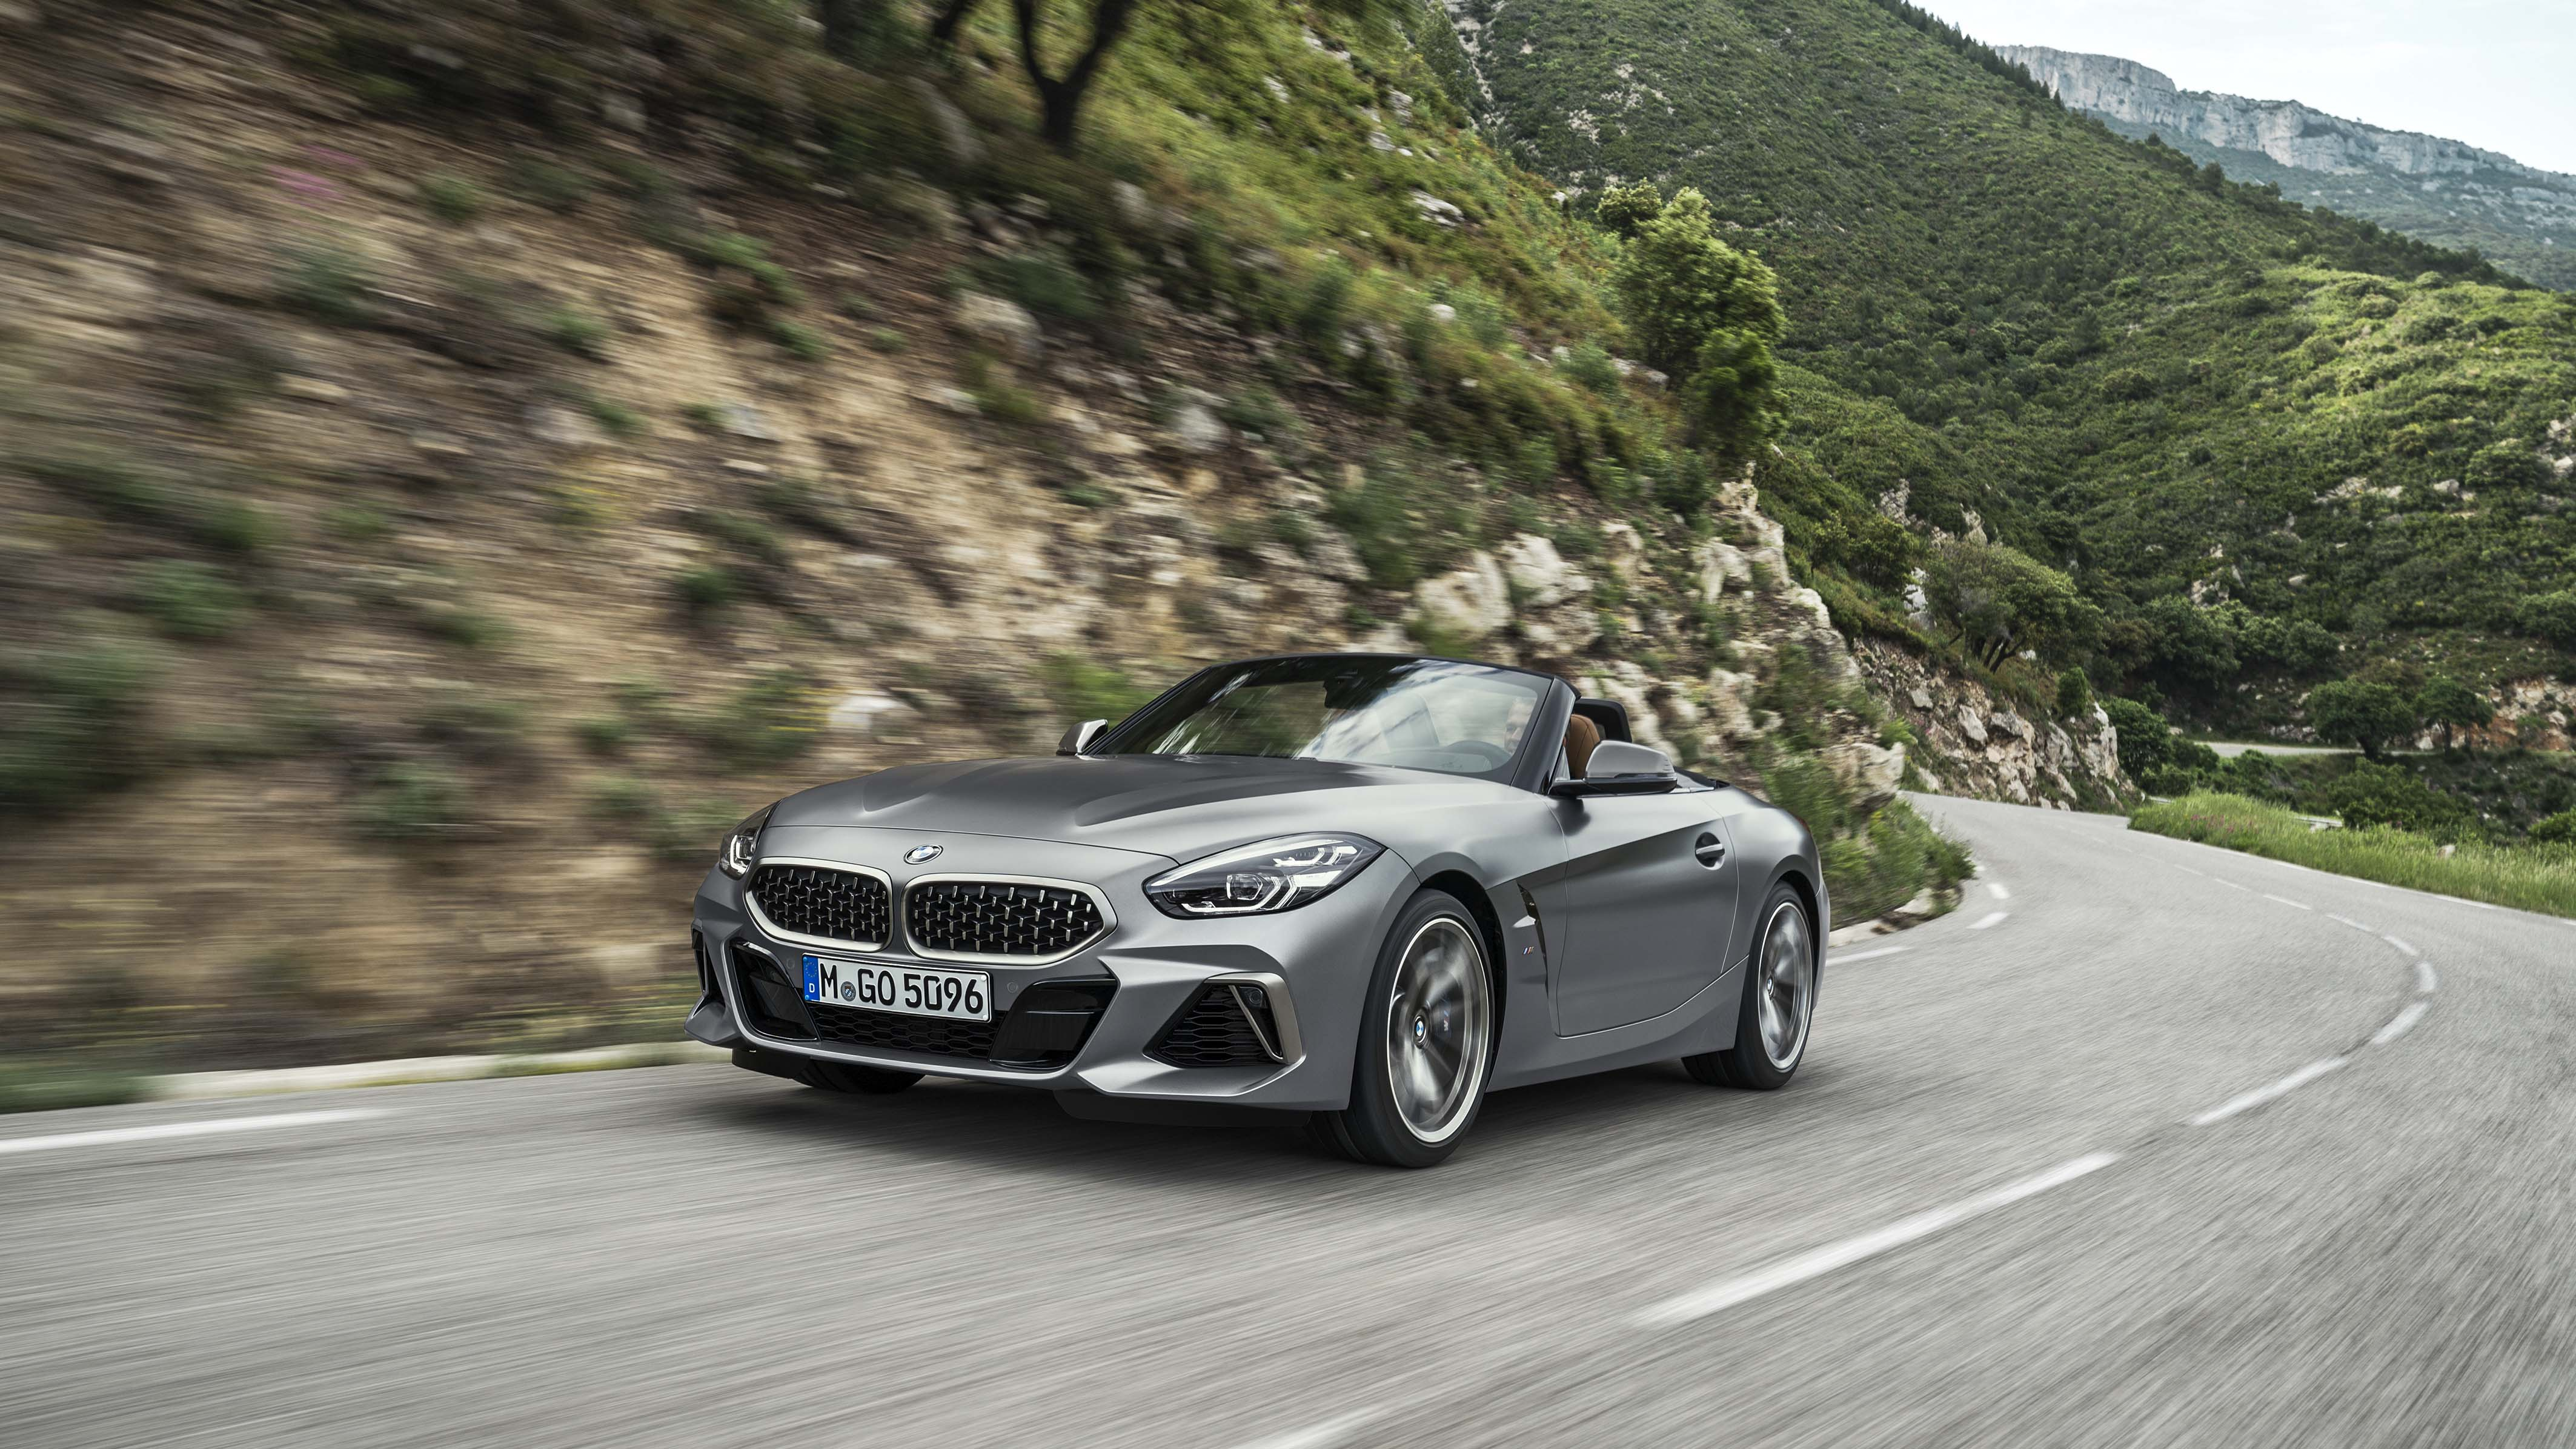 Bmw Z4 Review And Buying Guide Best Deals And Prices Buyacar